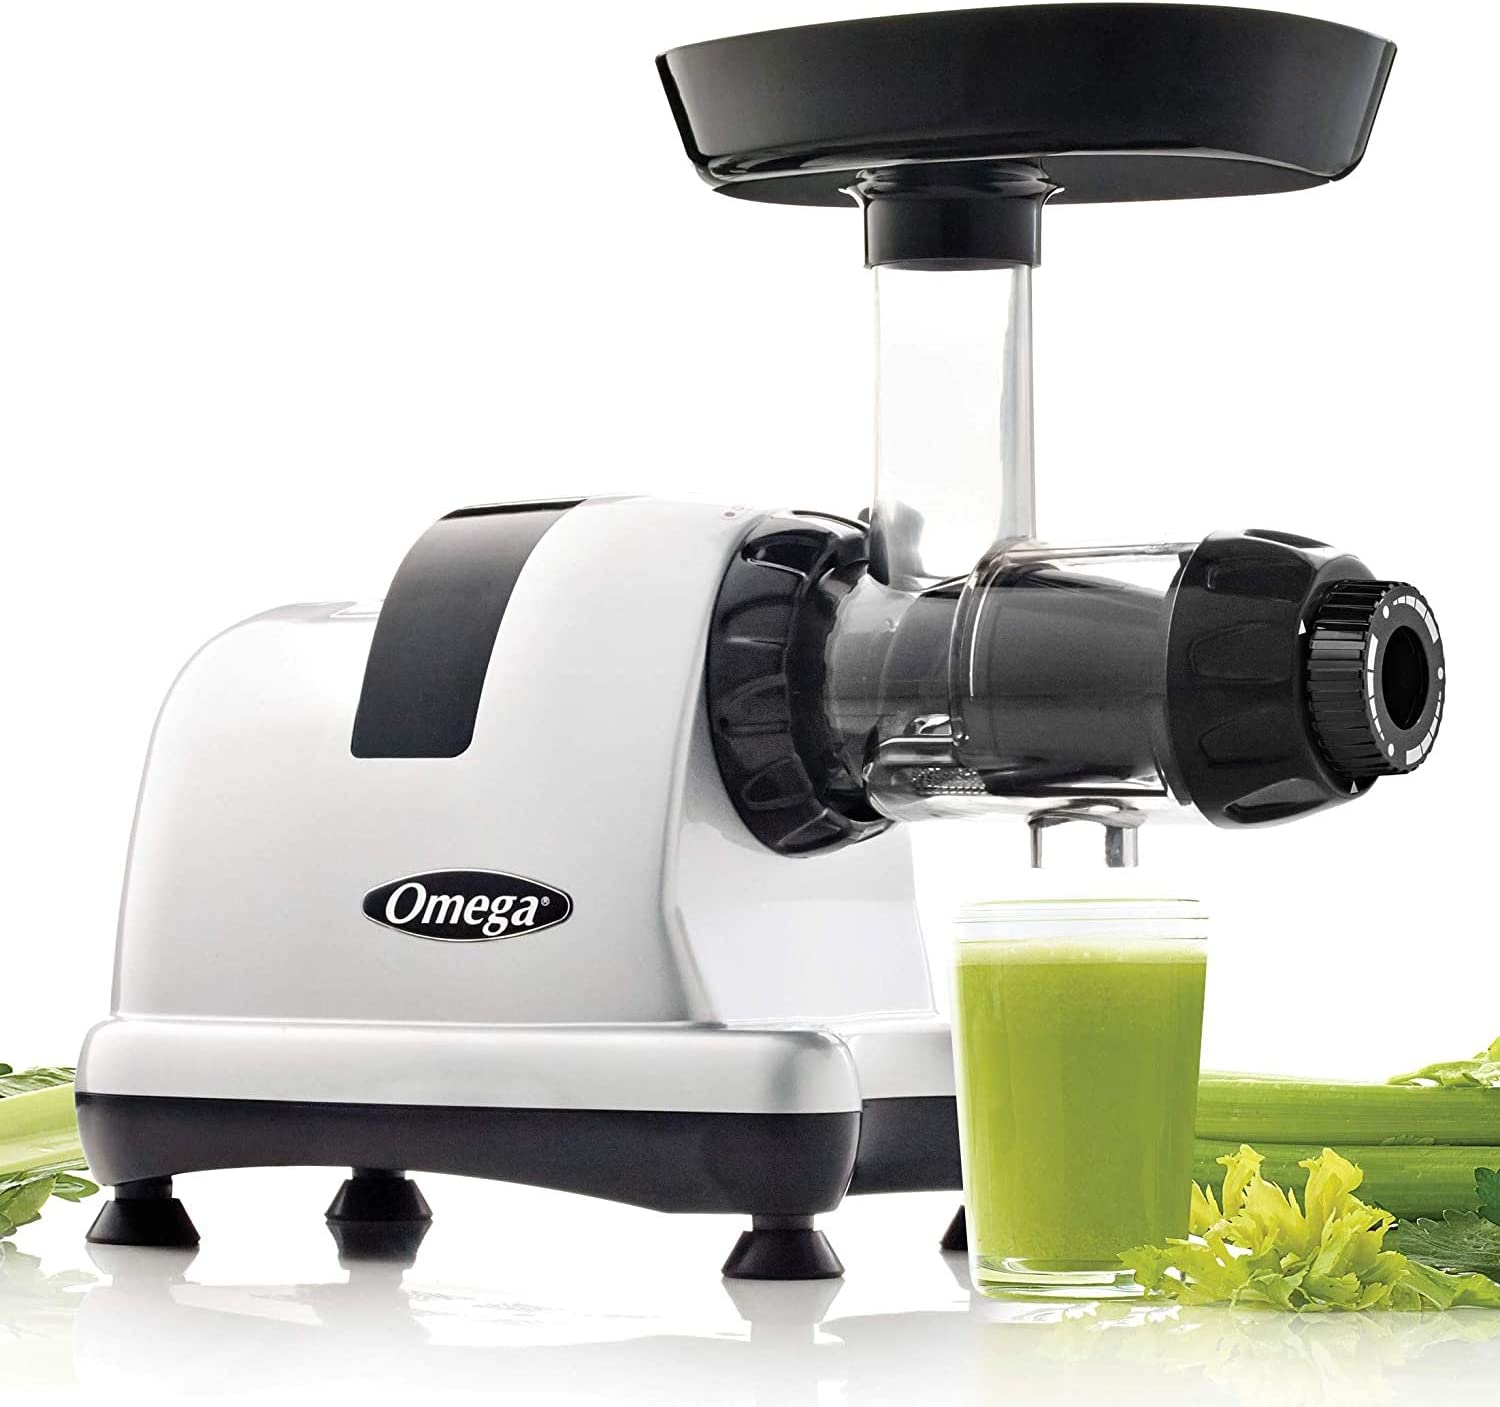 71dvntZClGL. AC SL1500 The Best Masticating Juicer 2021 - Reviews & Buyer's Guide